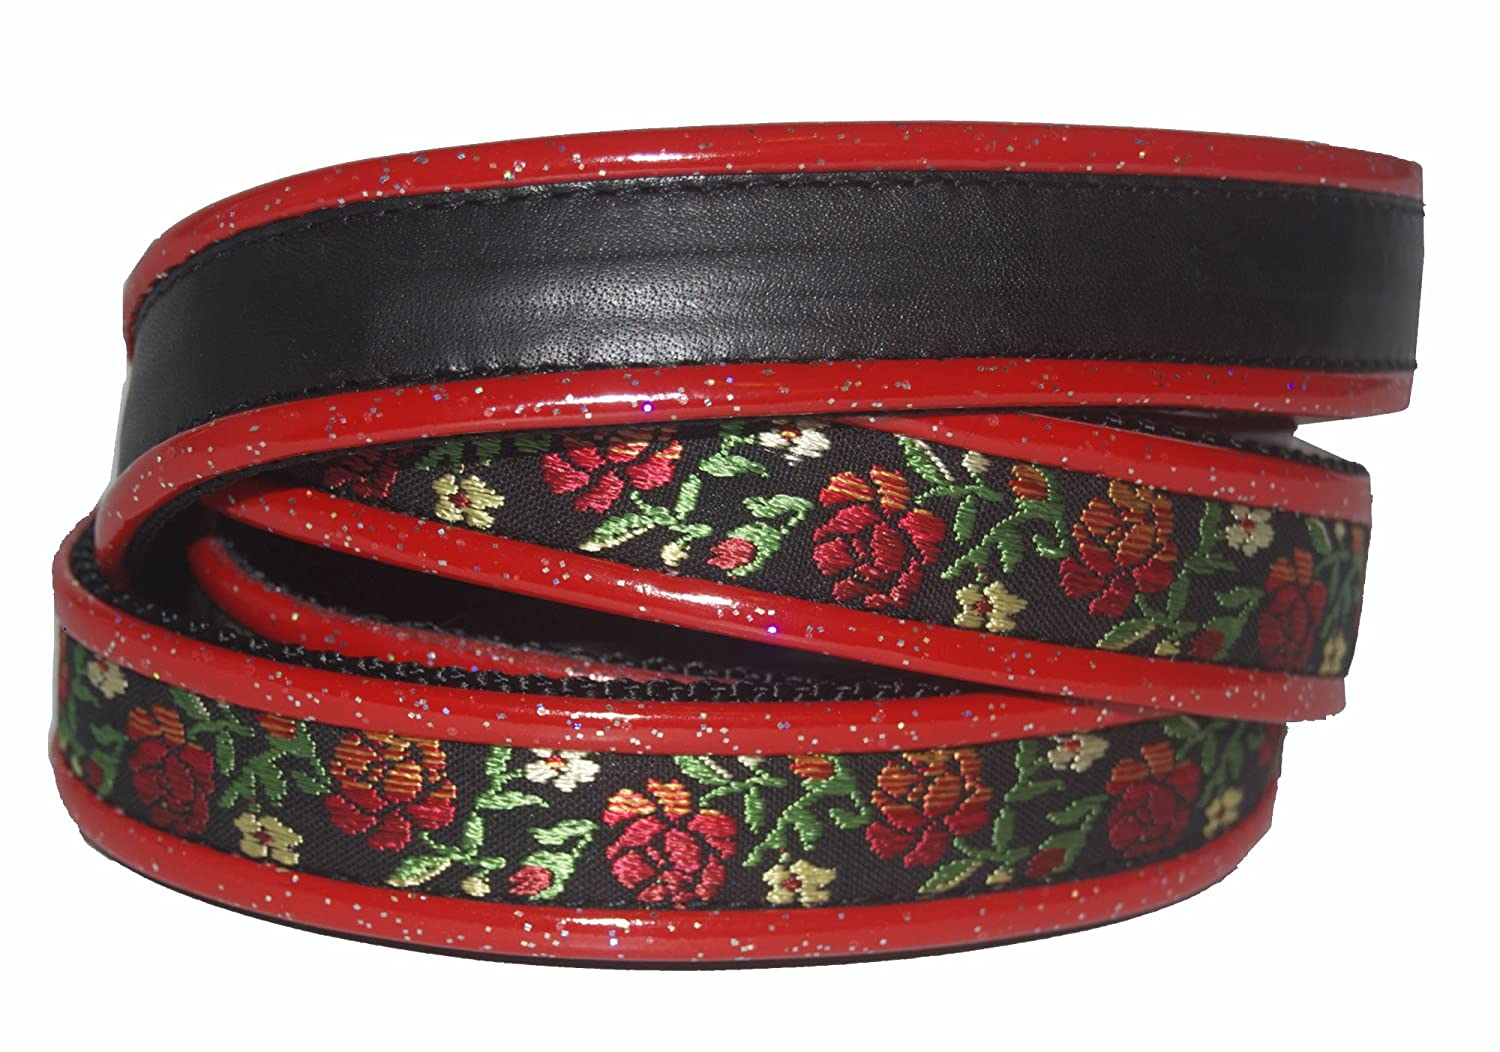 Jodi Head's RJ Cash Petwear Brocade Red pinks Dog Collar and Leash, Medium, Black with Red pinks, Green Leaves and Red Binding